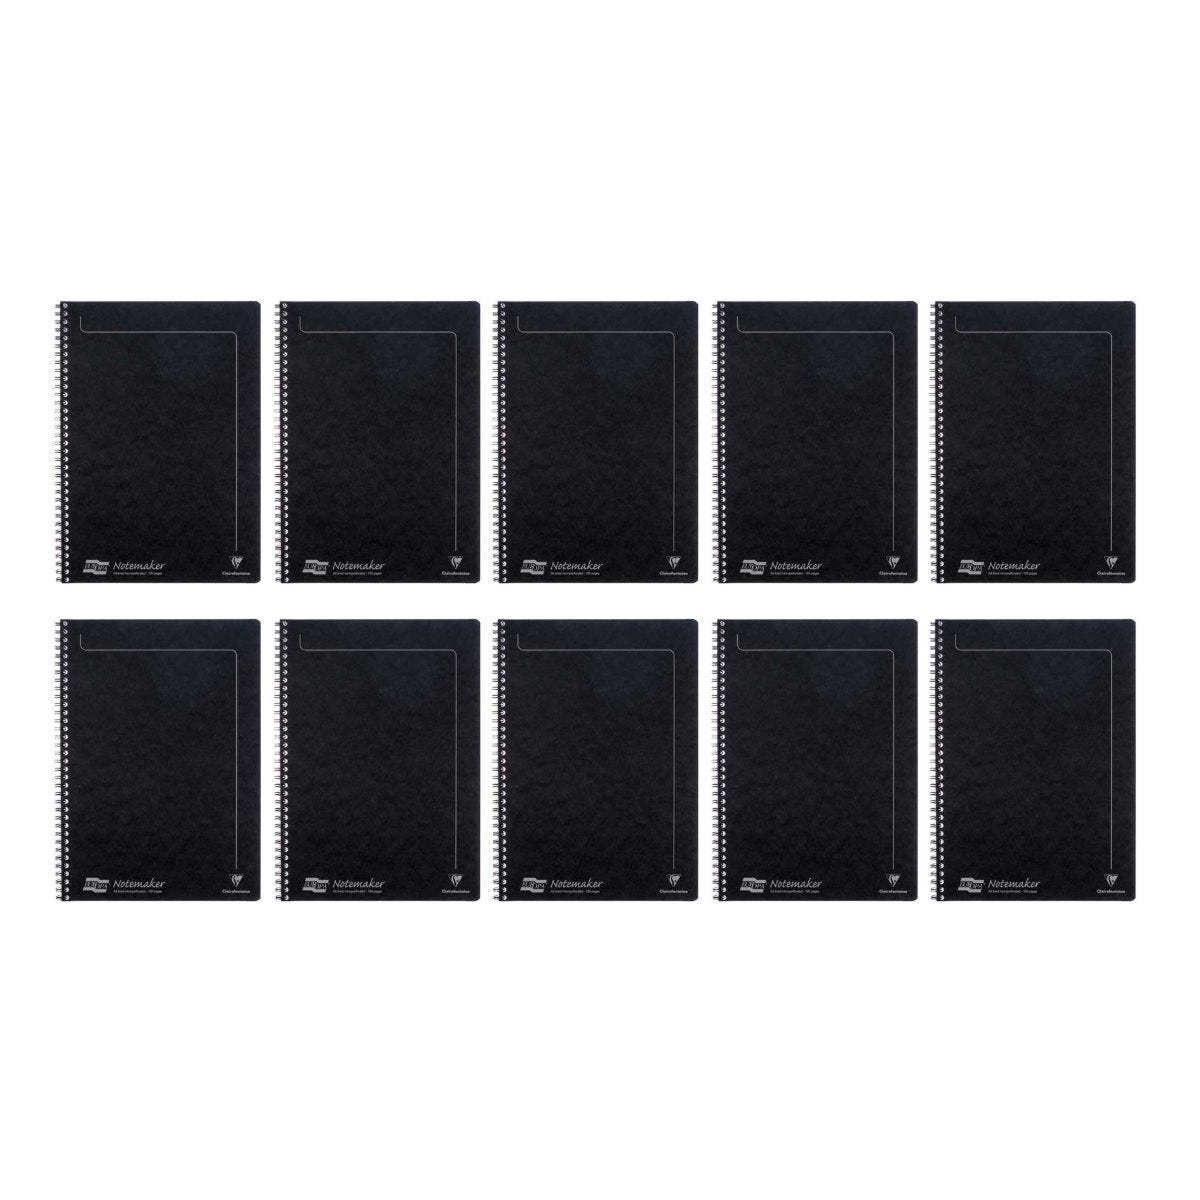 Europa Notemaker Notebooks Black A4 120 Page Pack Of 10